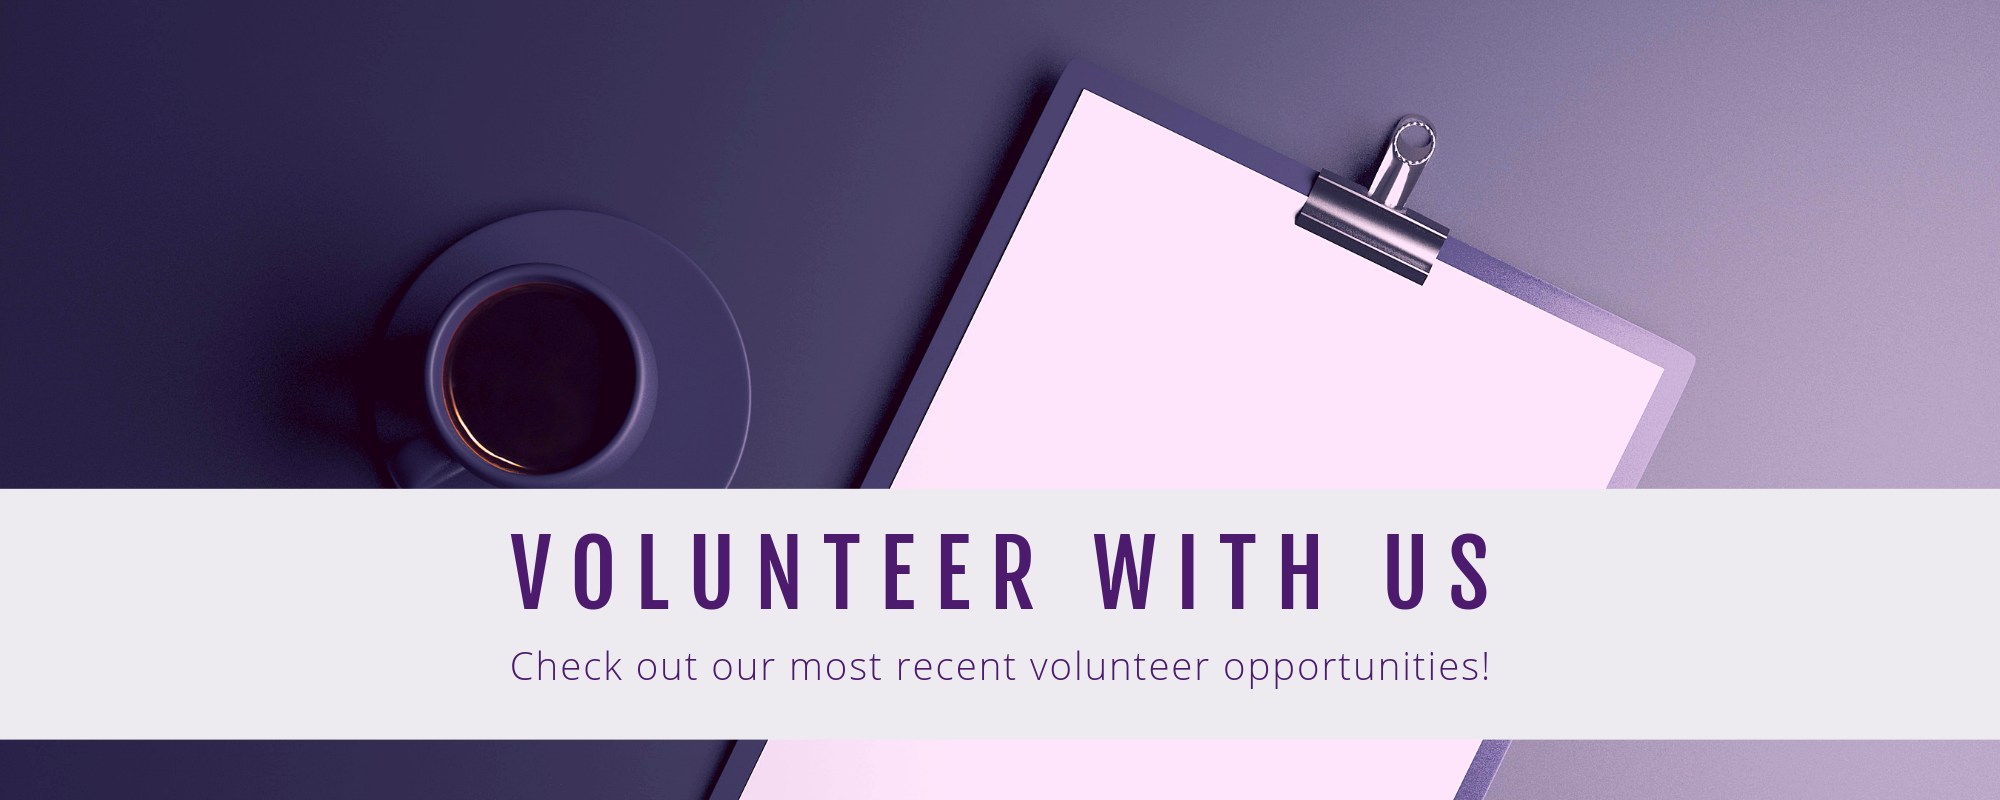 Copy of volunteer with us.png